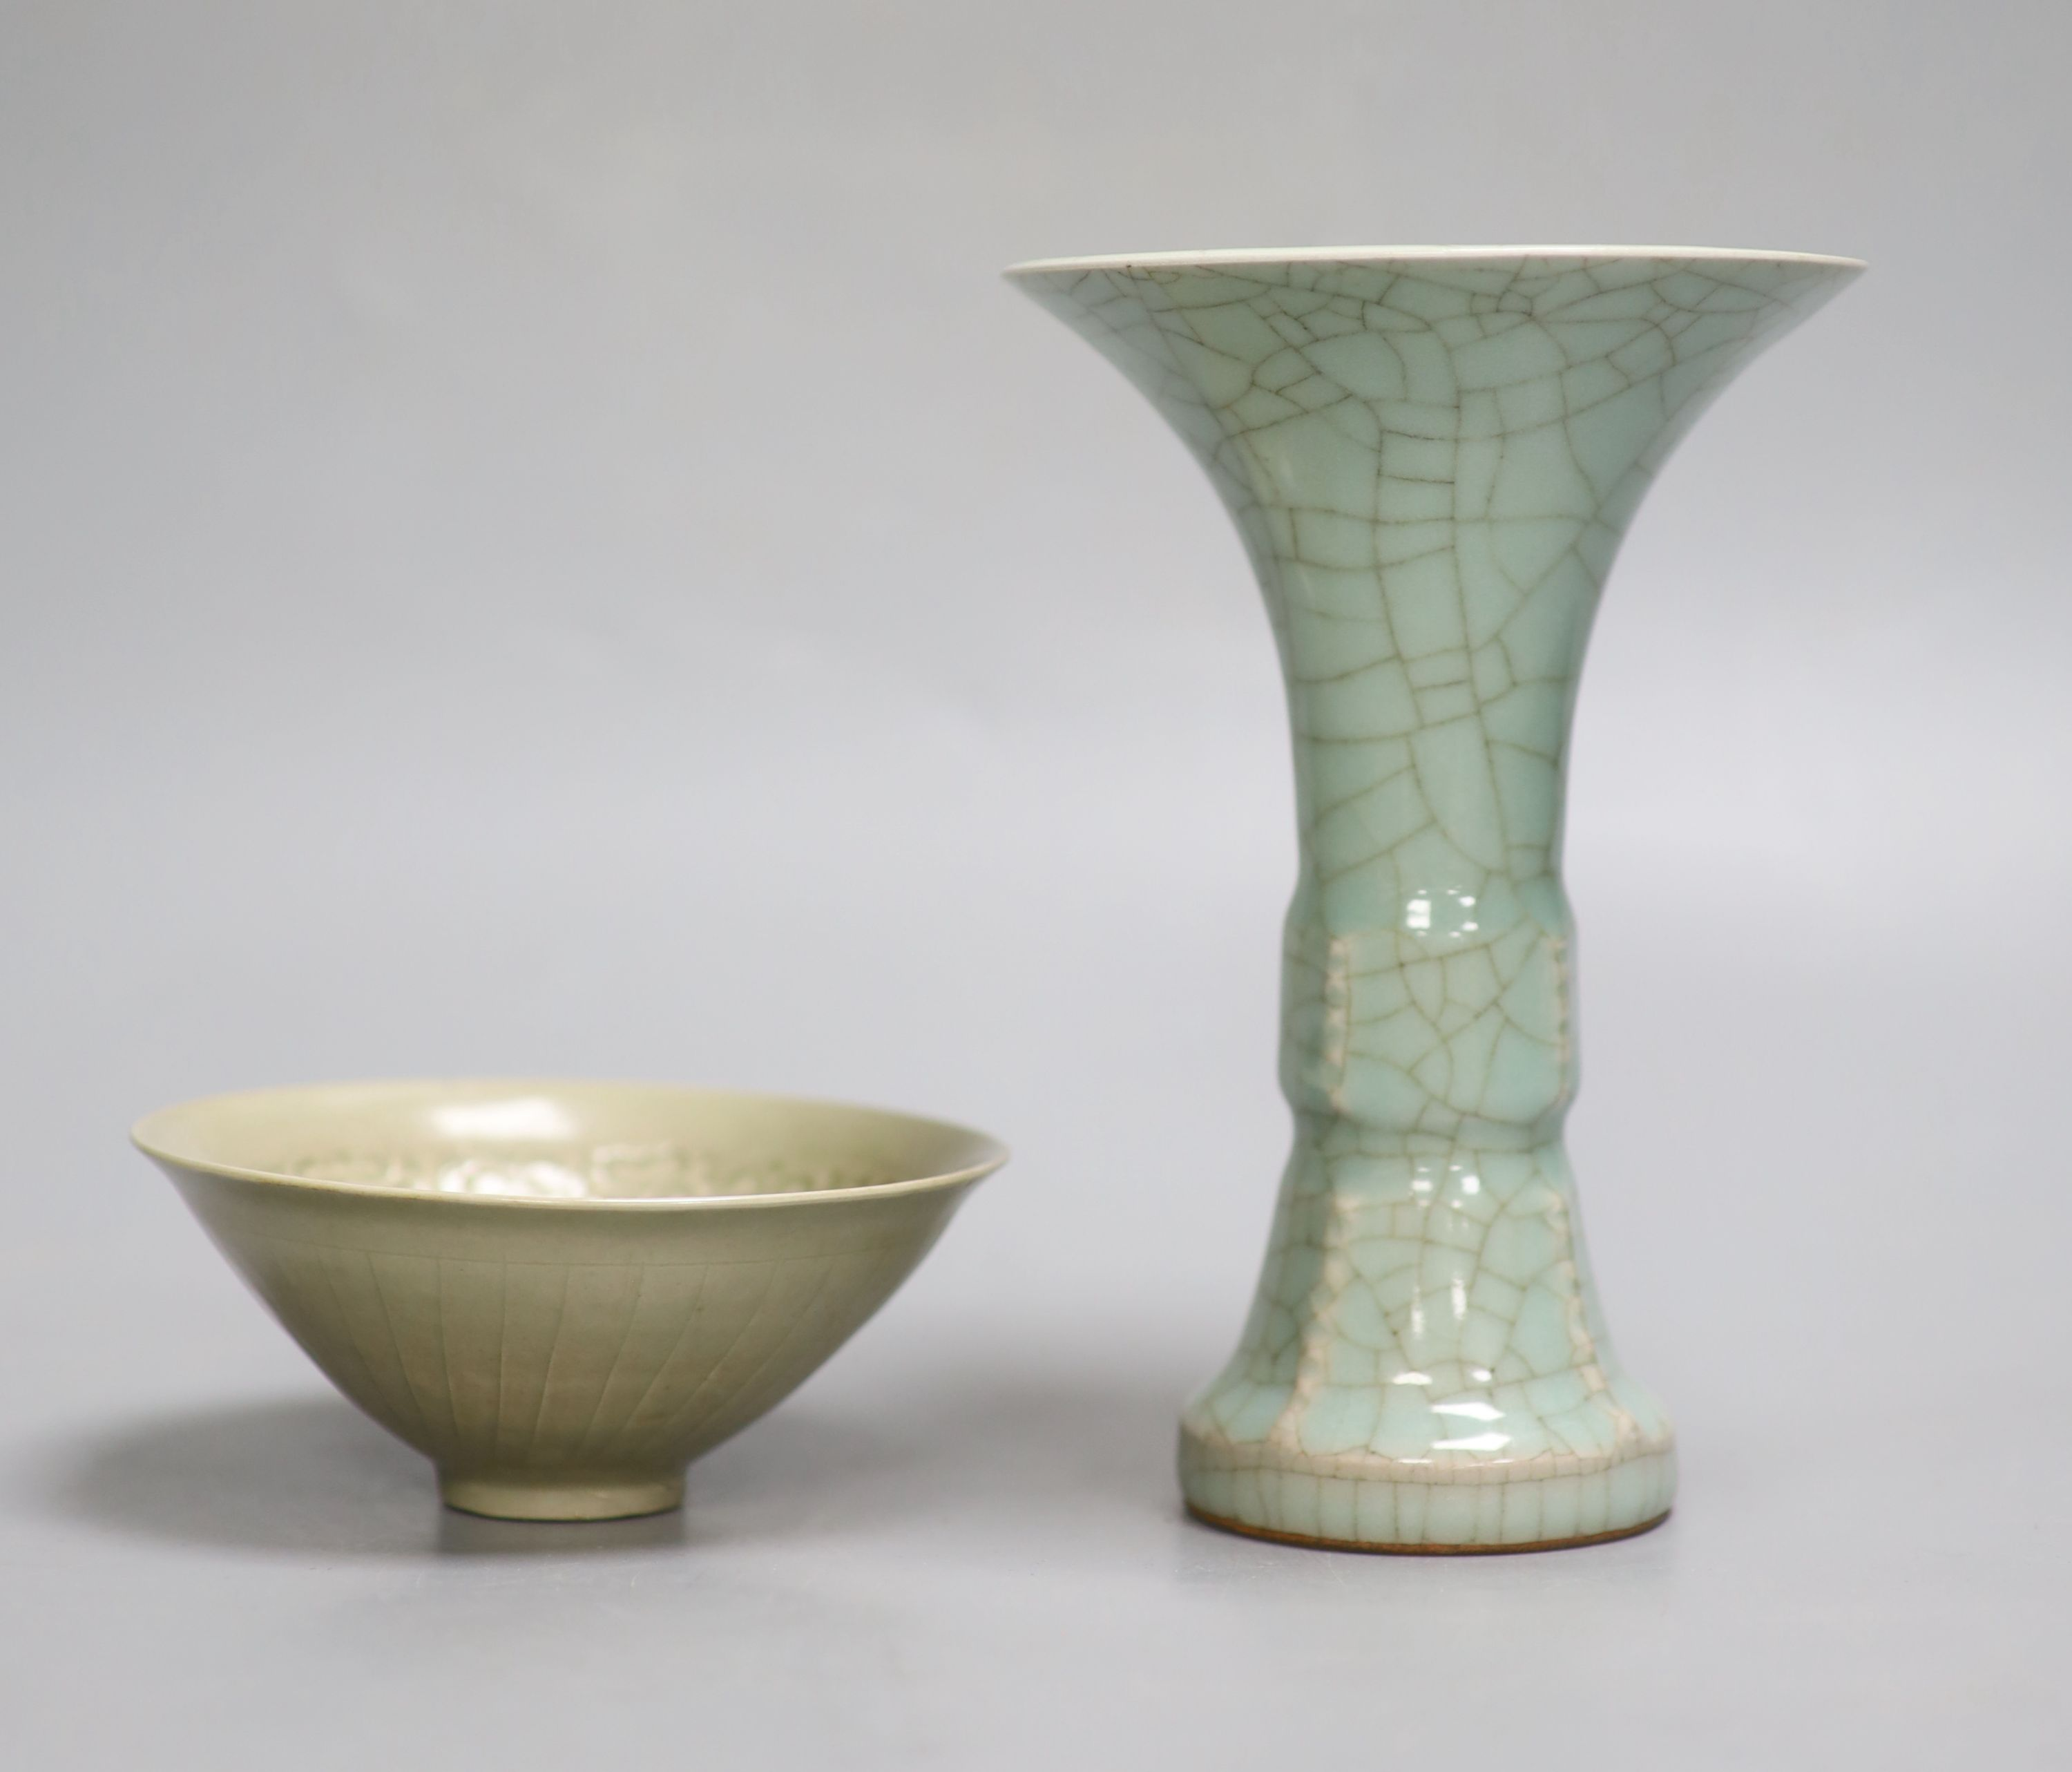 A Chinese crackleglaze beaker vase, height 17cm. and a celadon bowlCONDITION: Both good